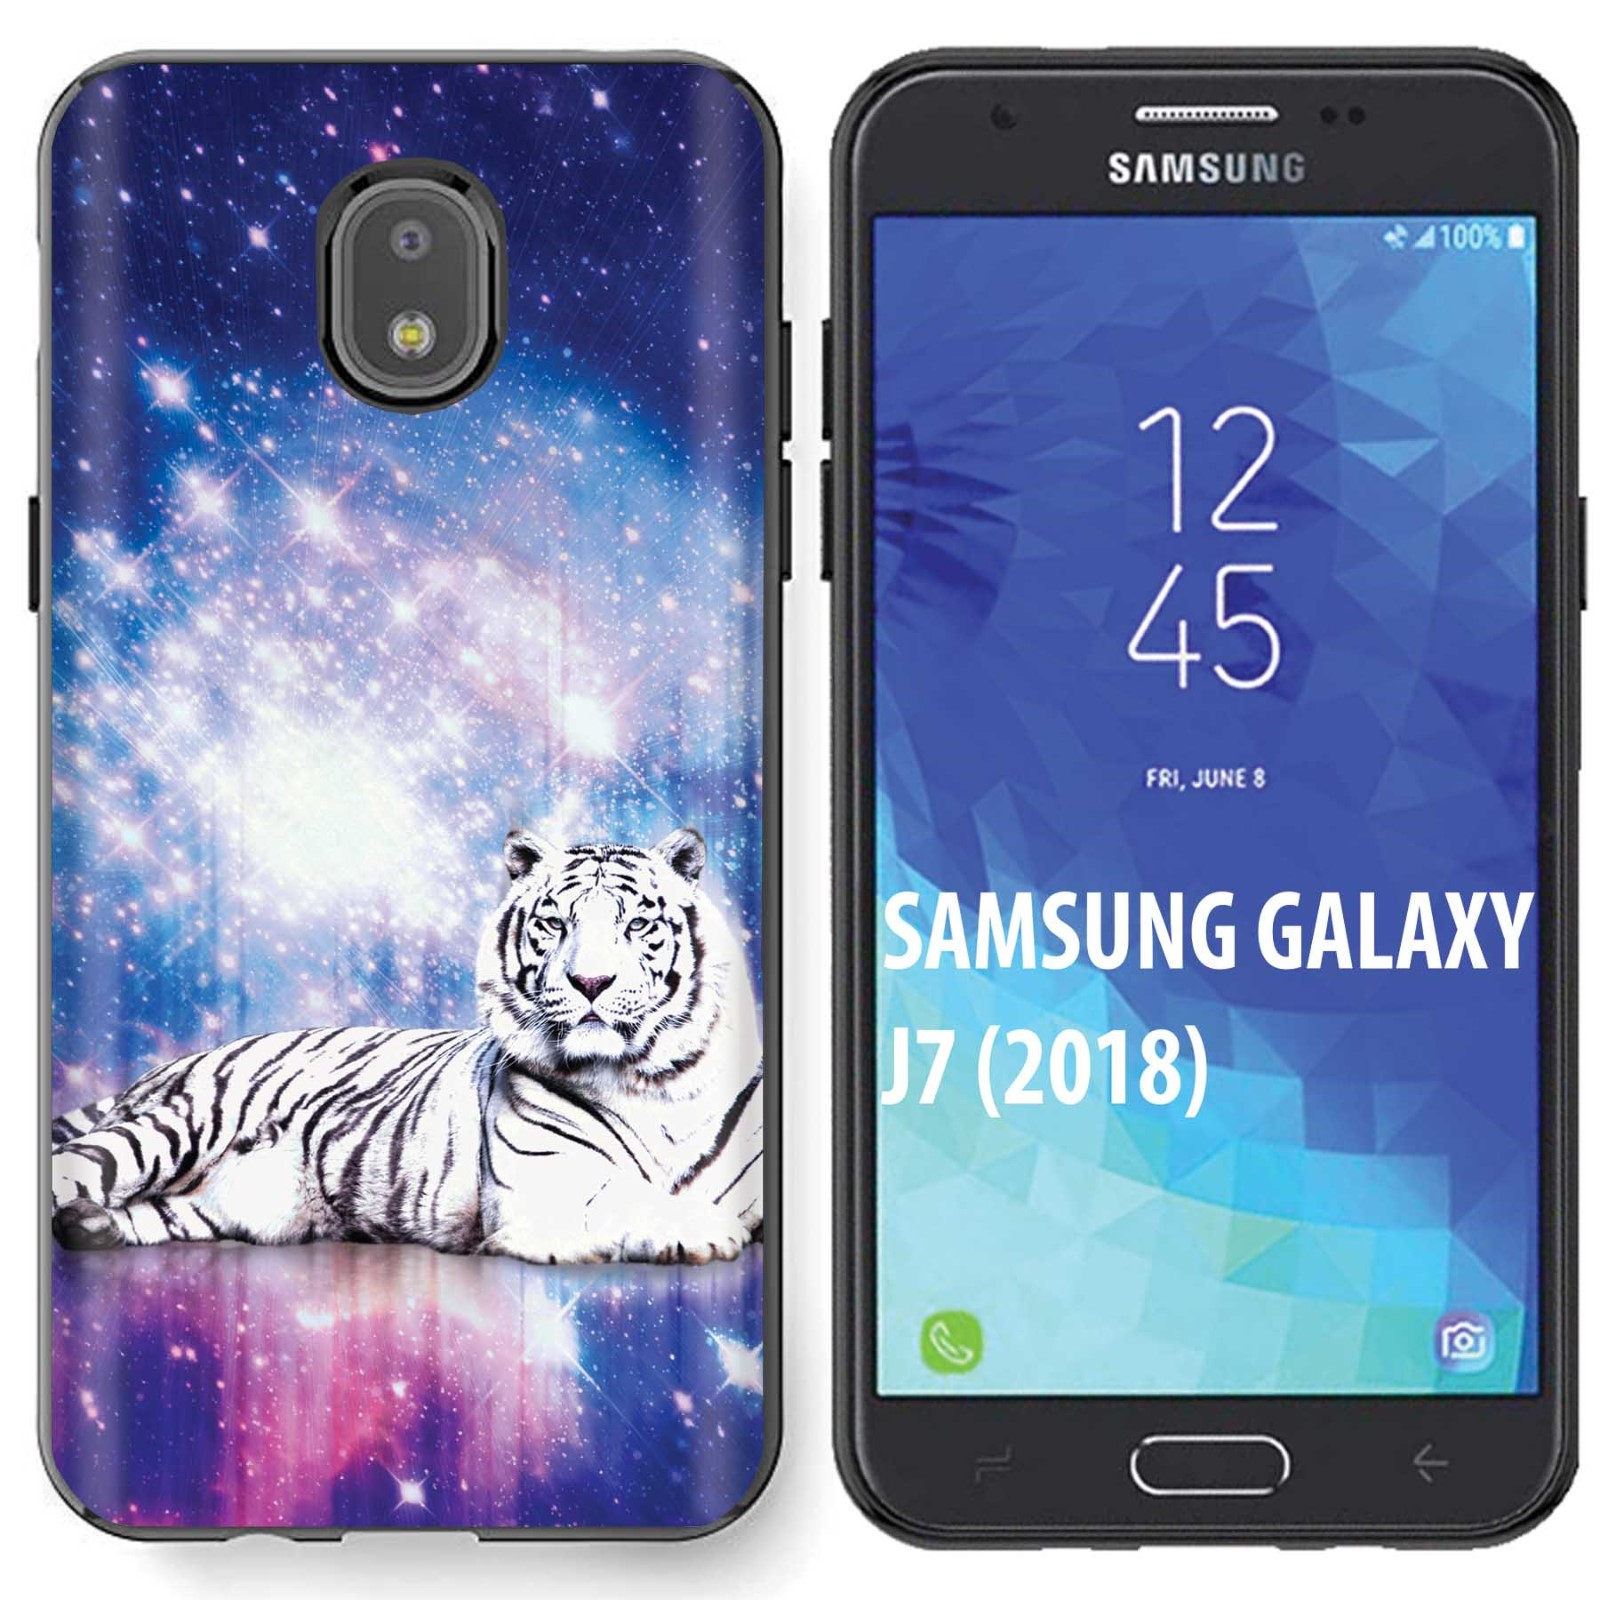 Skinguardz  Samsung Galaxy  J7 2018   J7 Aero  J7 Refine  J7 Star  J737  J7 V 2nd Gen  Black  Slim